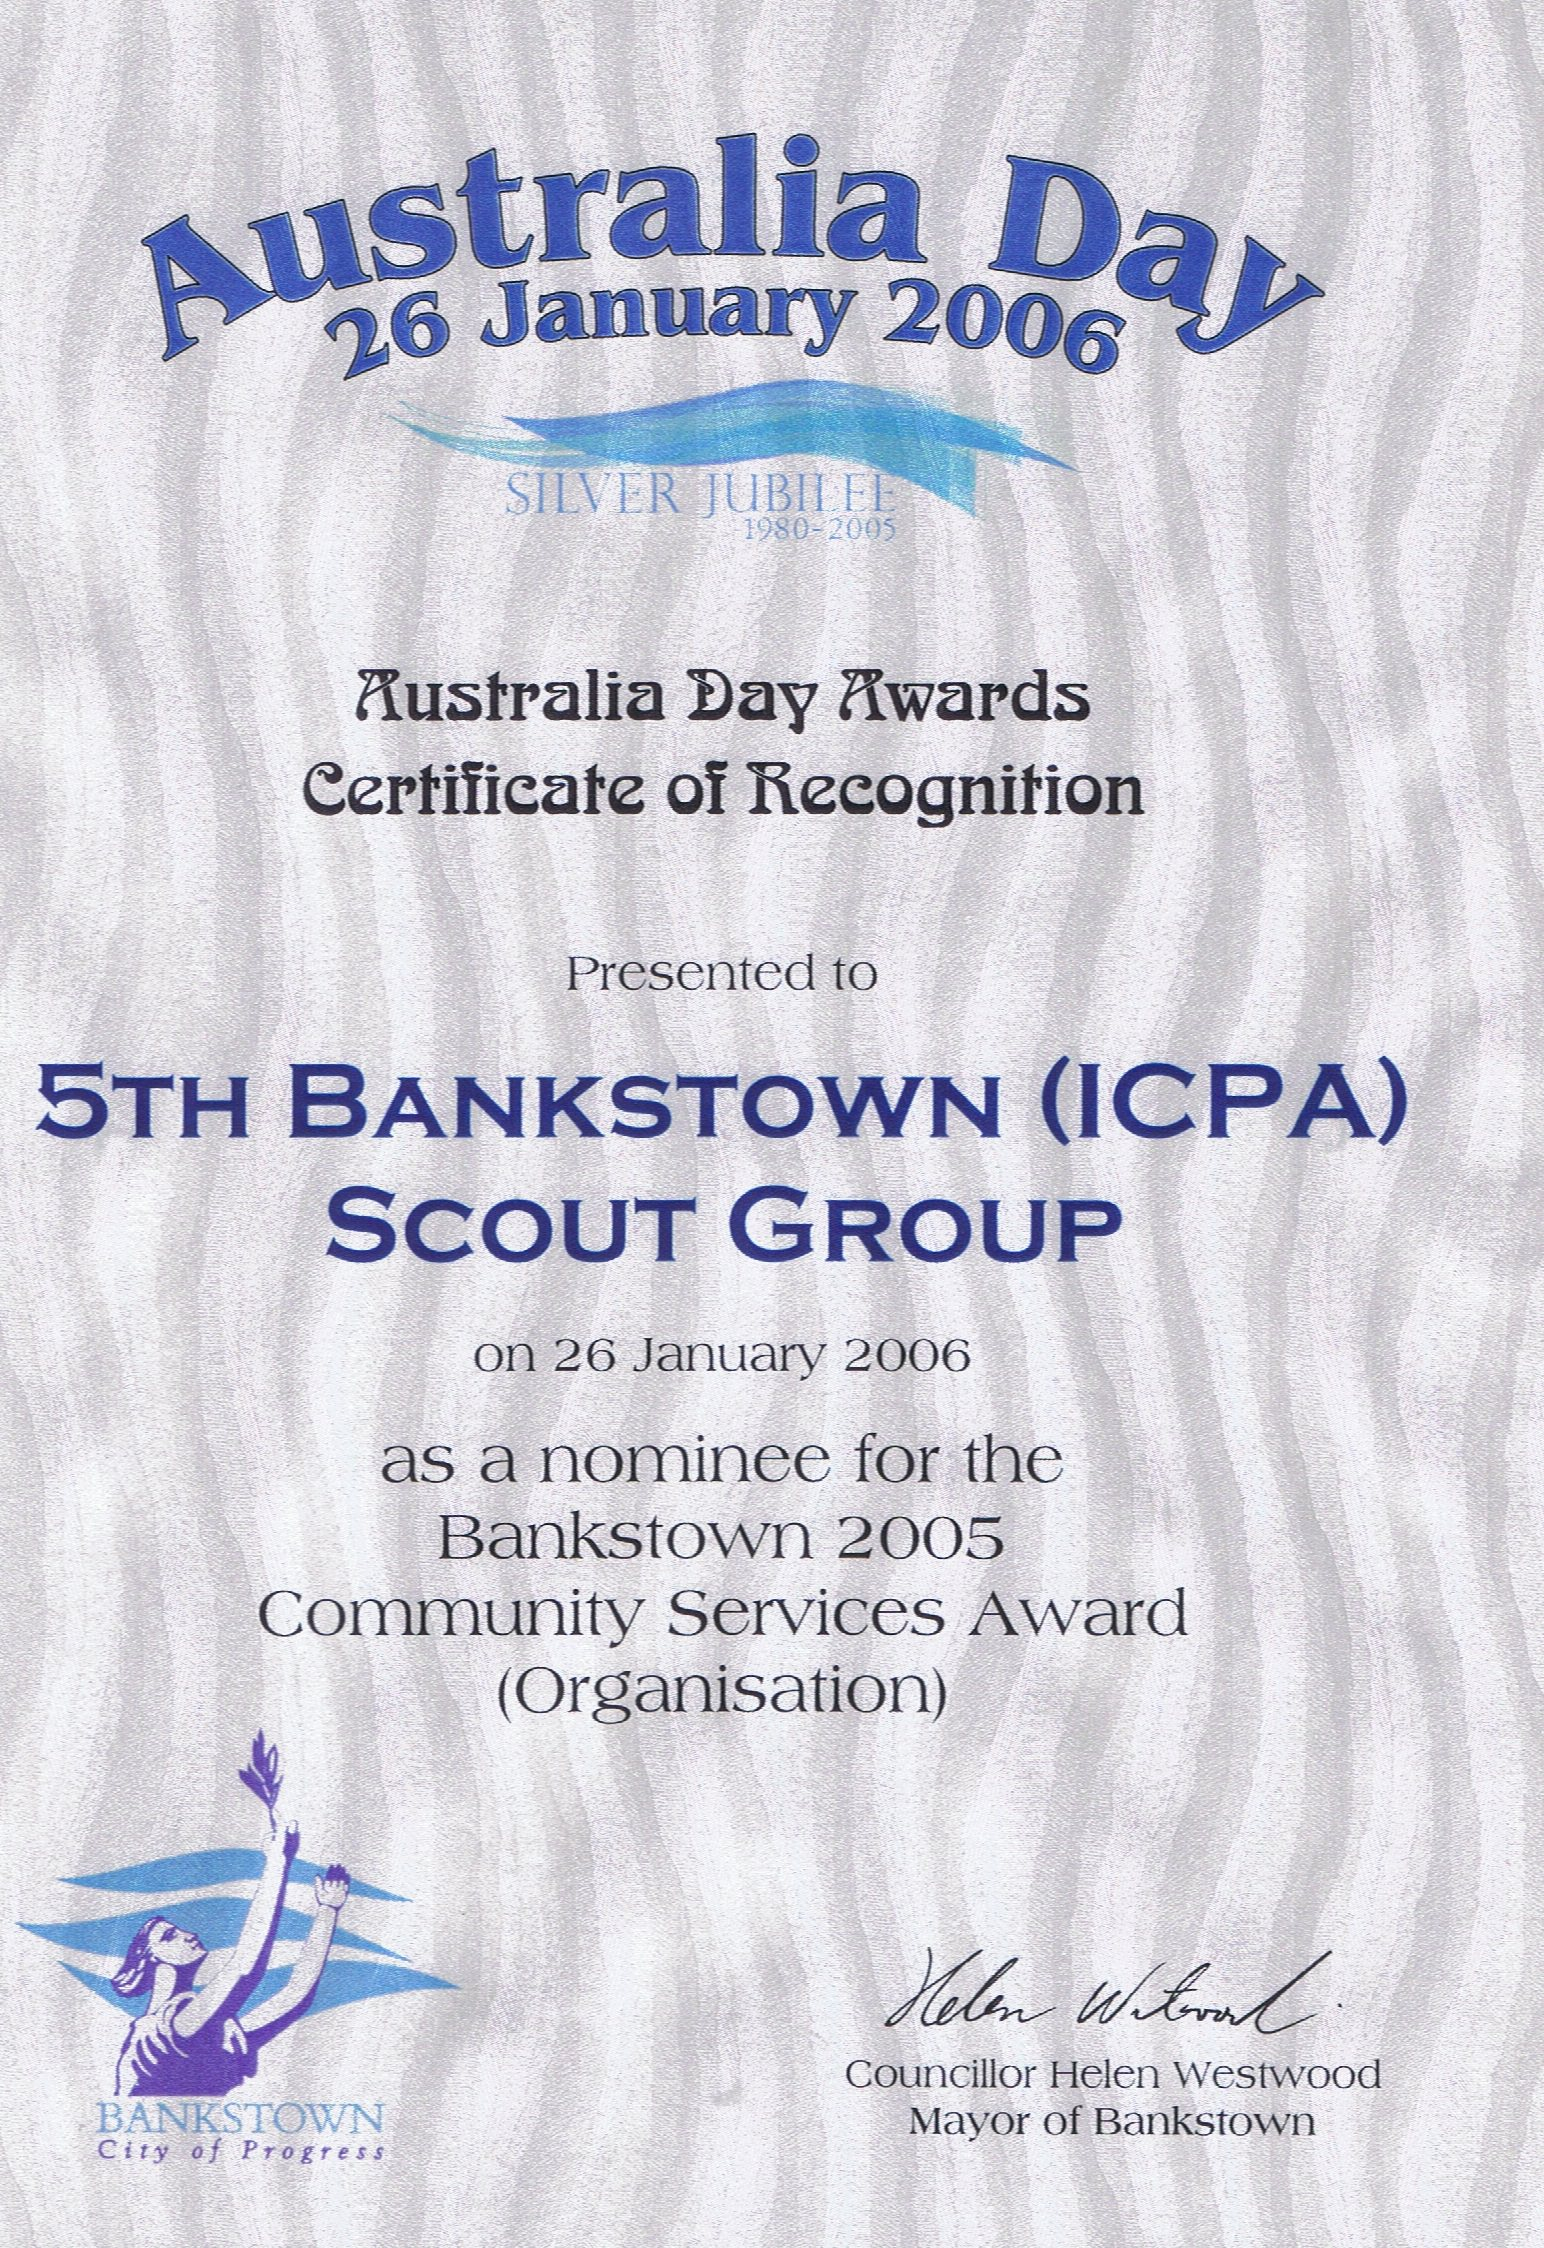 Australia Day Award Certificate of Recognition - 2006